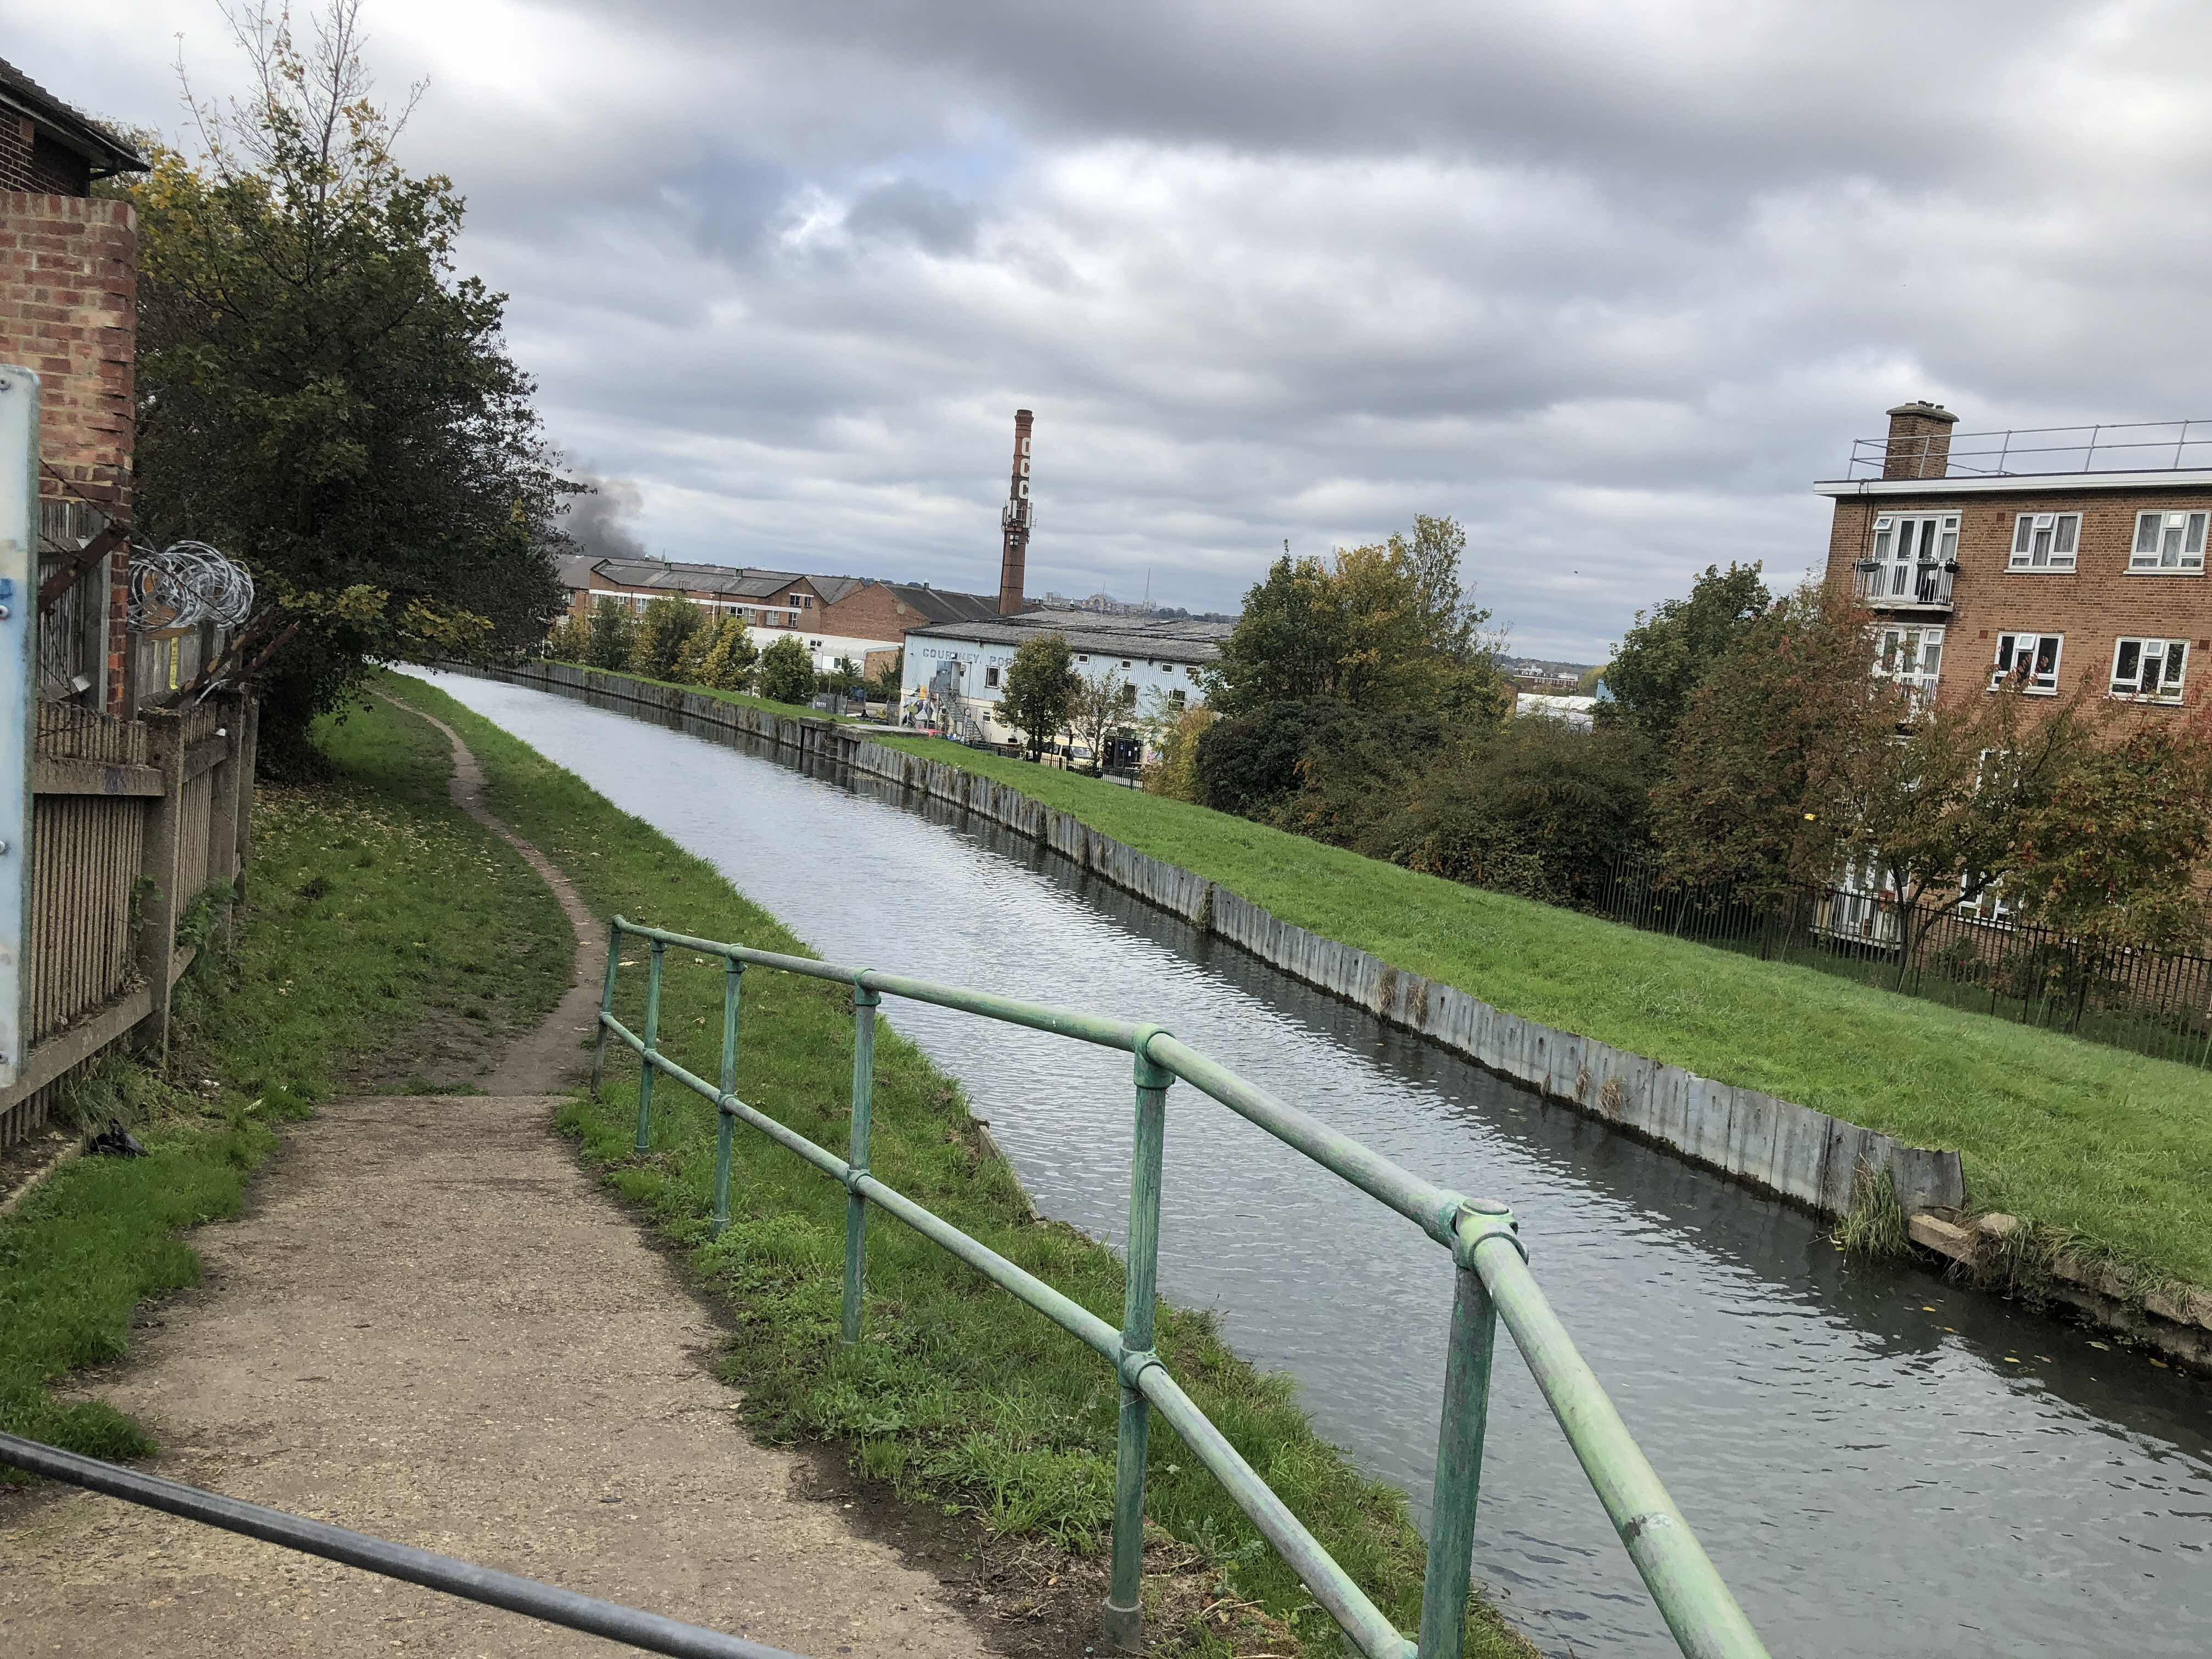 A view of the New River which, at this point, is a straight and narrow body of water stretching into the distance. To the left of the picture can be seen the entrance to its towpath.